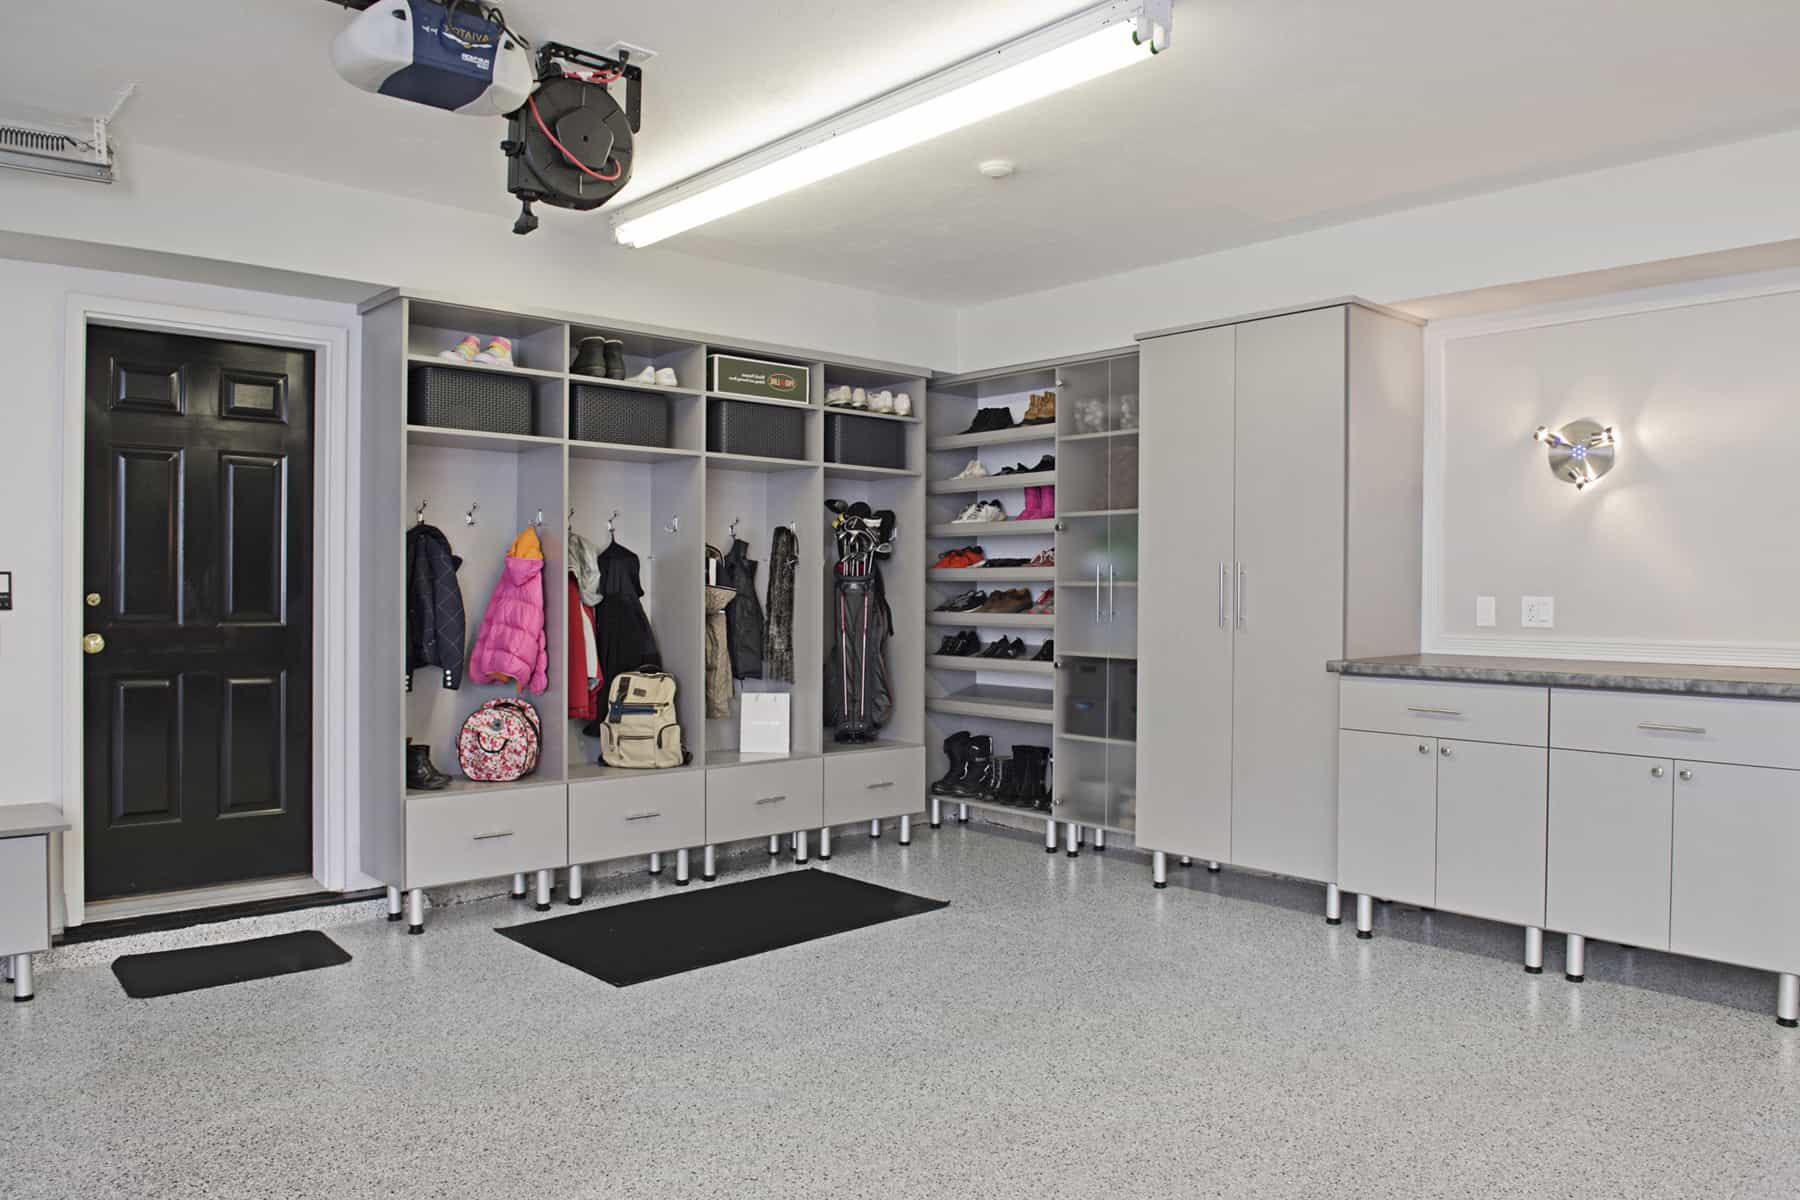 Contemporary Garage Shelves And Storage Organization (View 5 of 10)